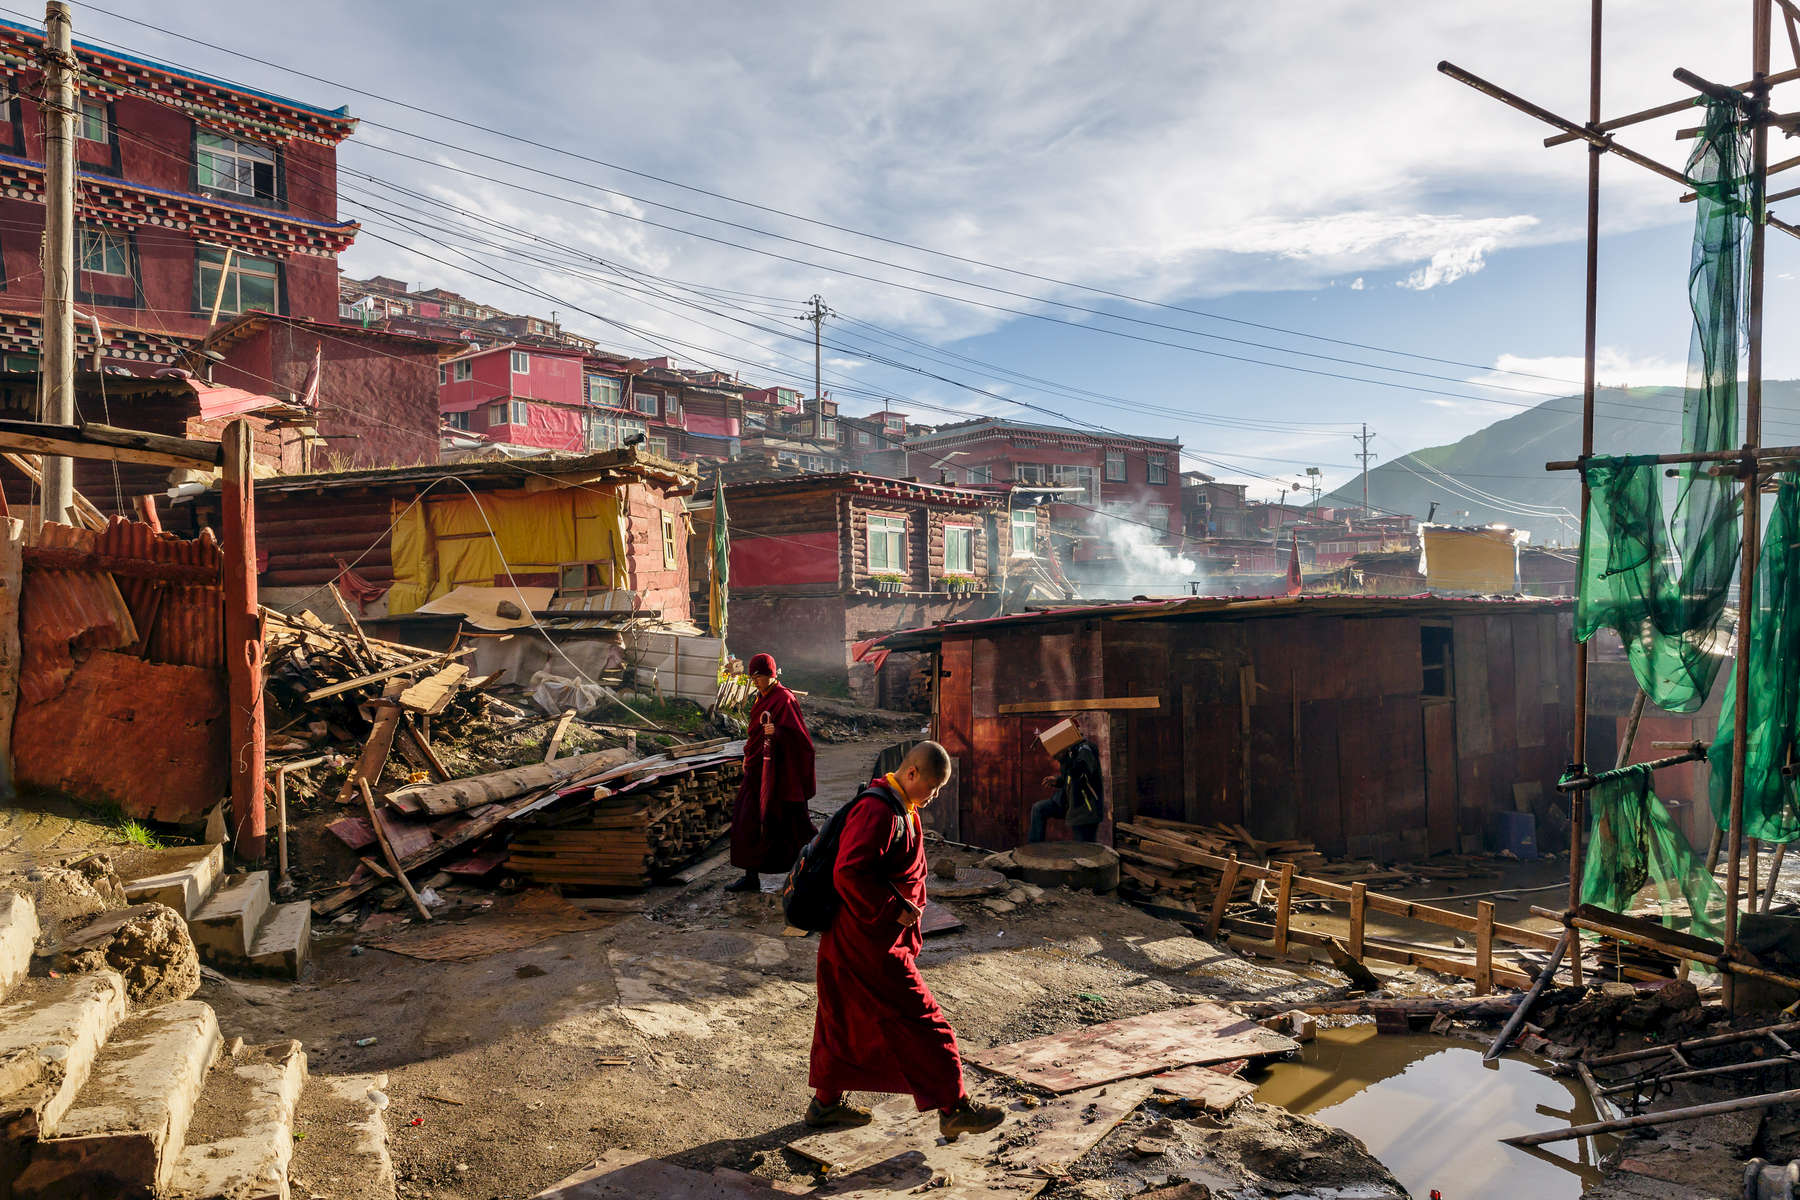 Despite perodical attempts by Chinese authorities to curb development at larung Gar, construction here is constant, be it new places of worship, or simply running repairs to the basic huts which are home to 50,000 nuns an monks.